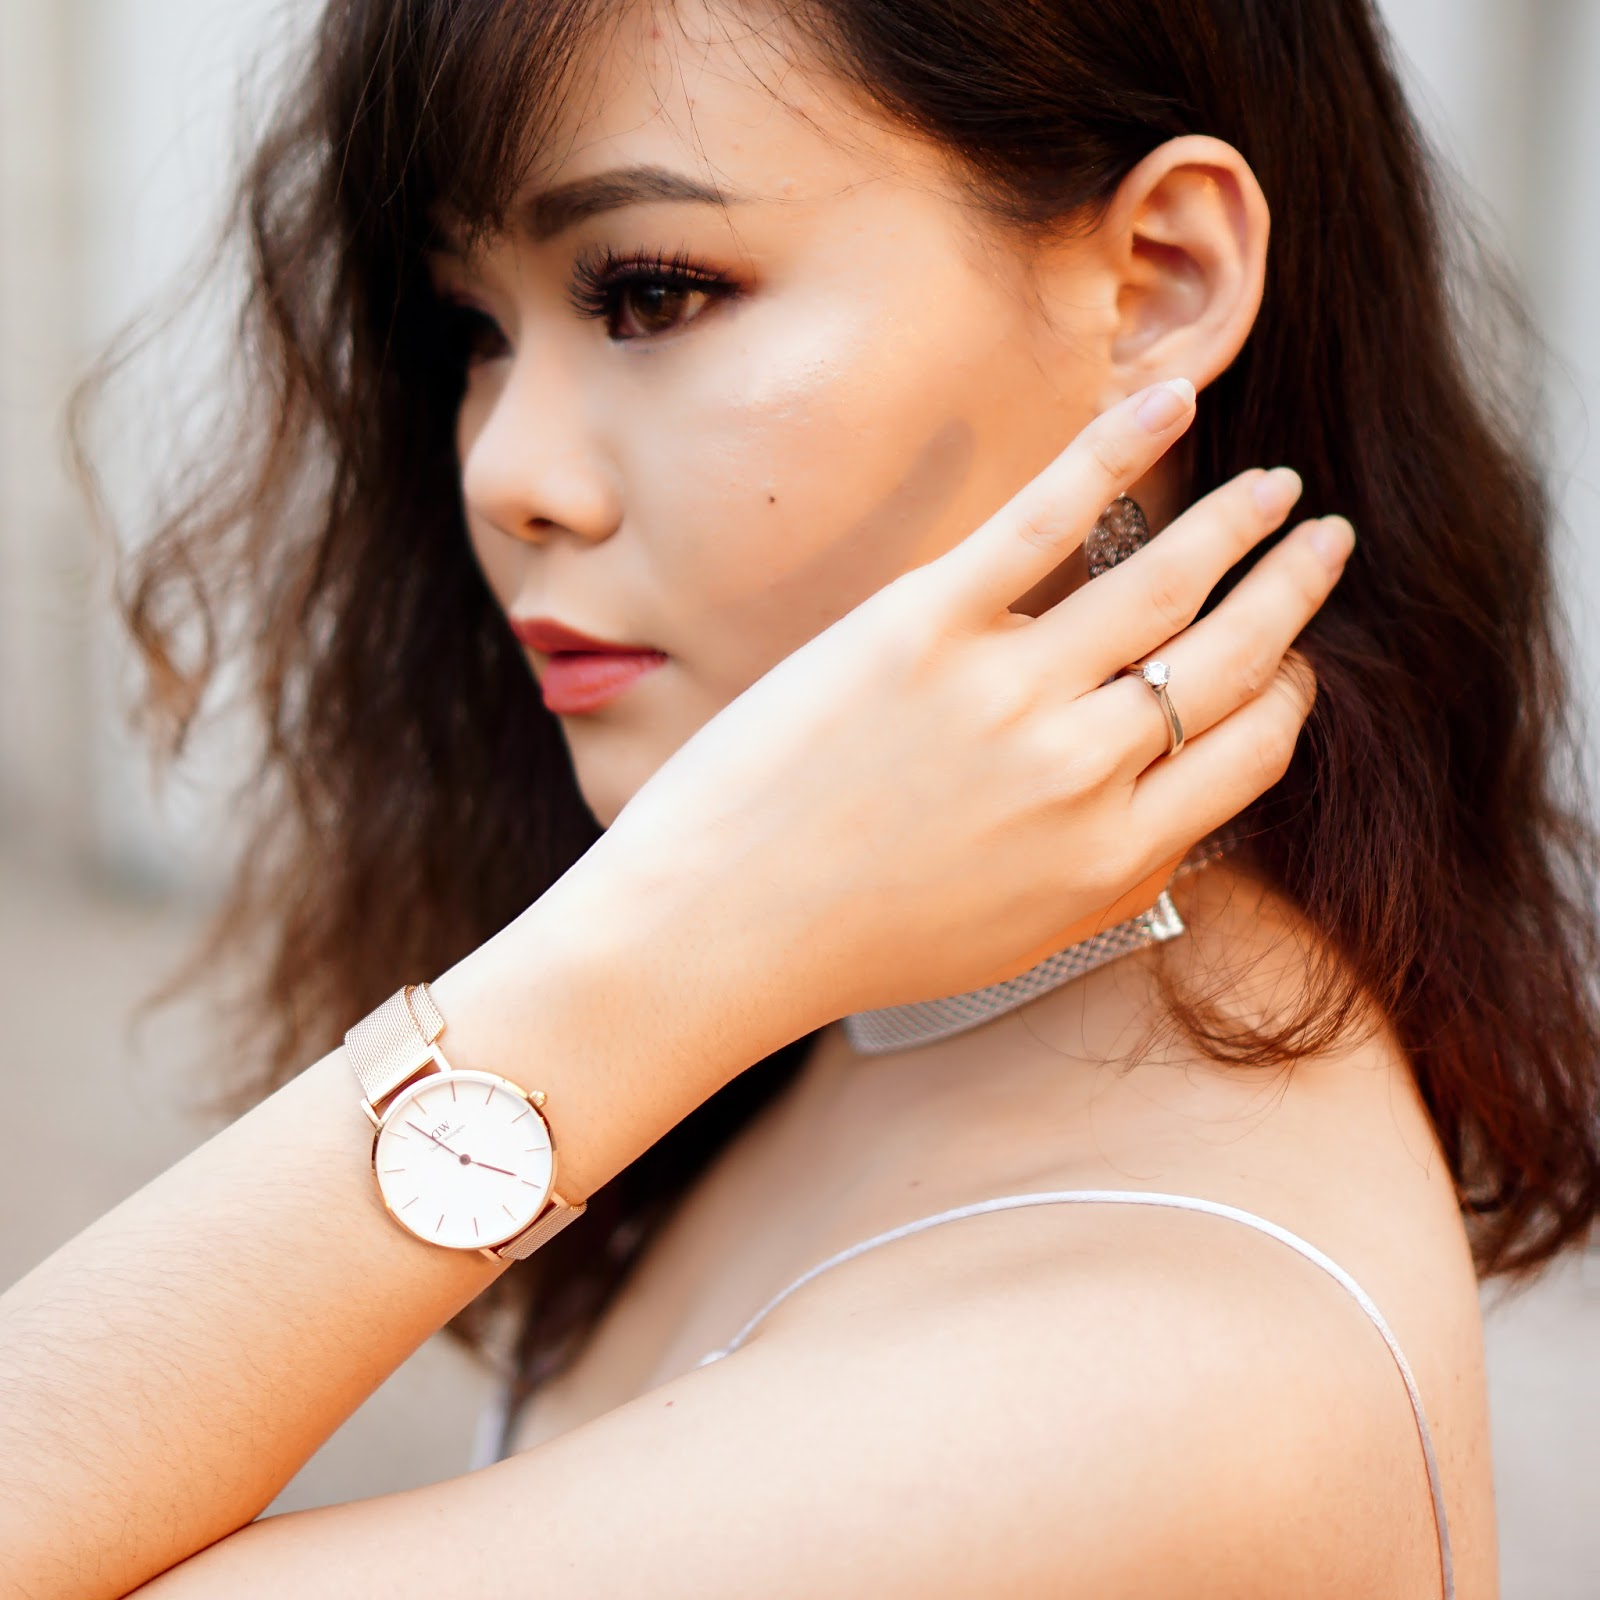 daniel wellington, dw, daniel wellington watch, dw watch, free dw, free daniel wellington, daniel wellinton discount code